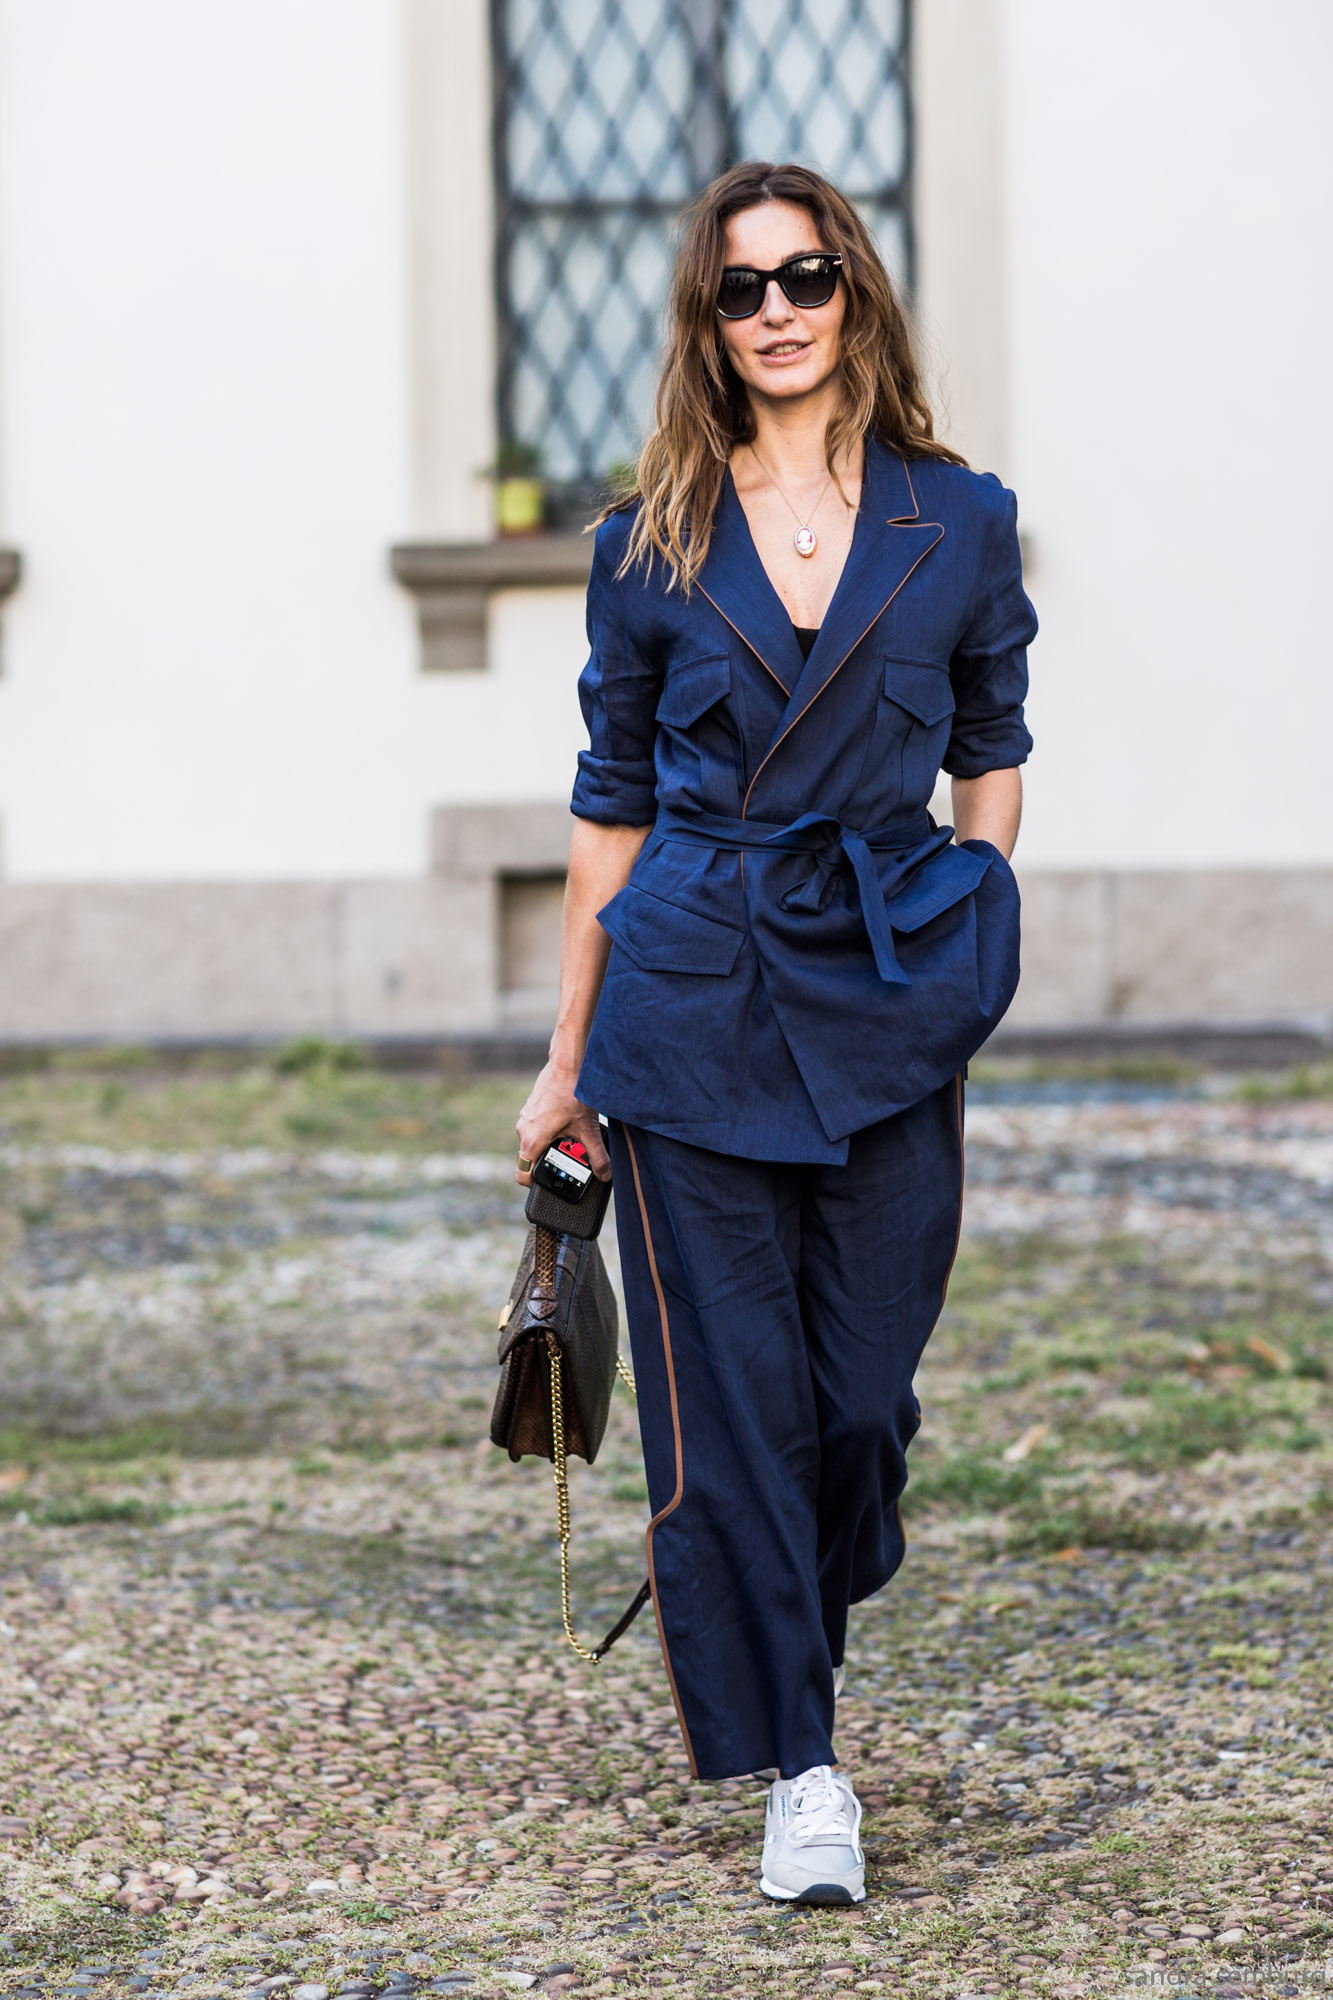 MilanFw_SS2016_day3_sandrasemburg-20150925-4911.jpeg